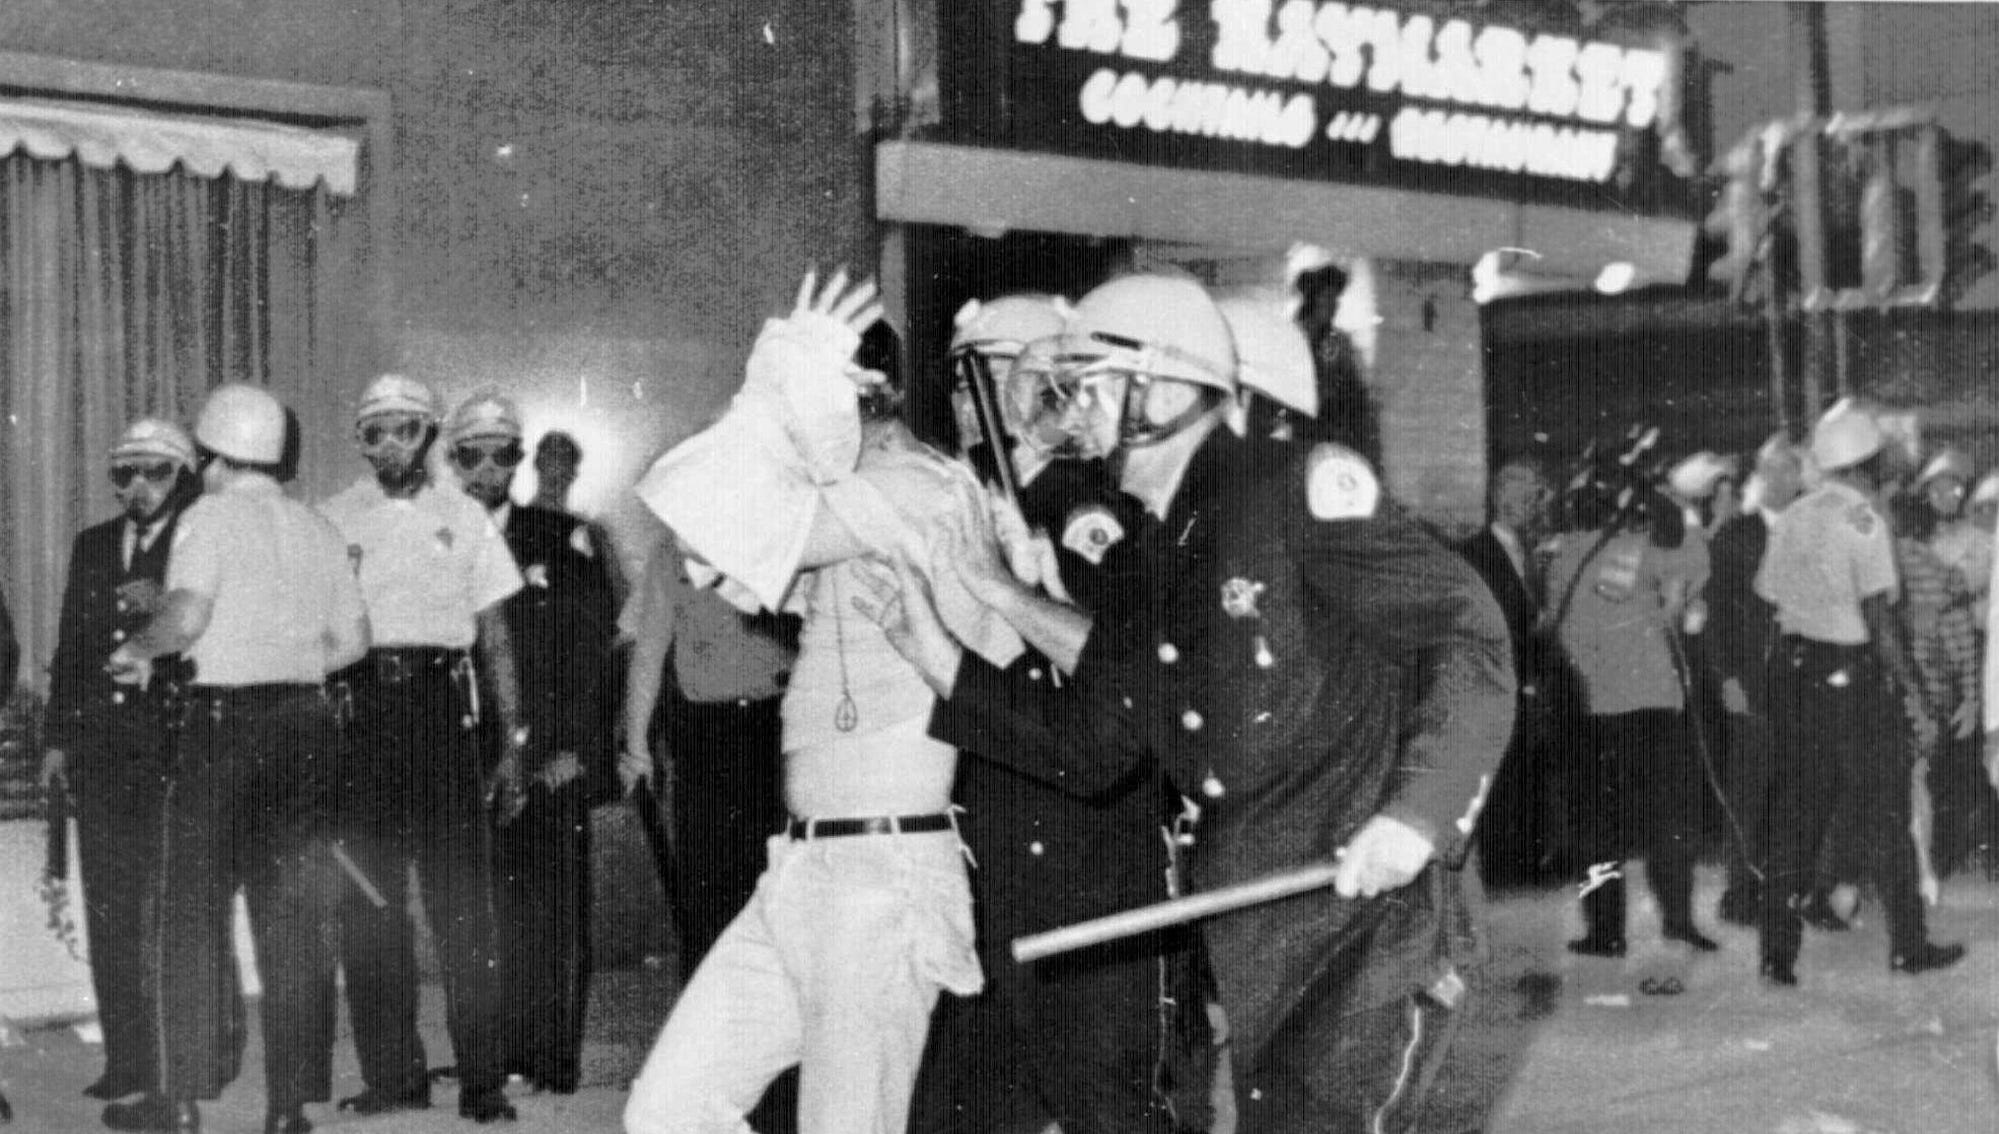 The 1968 political protests in Chicago upended the way presidents are picked